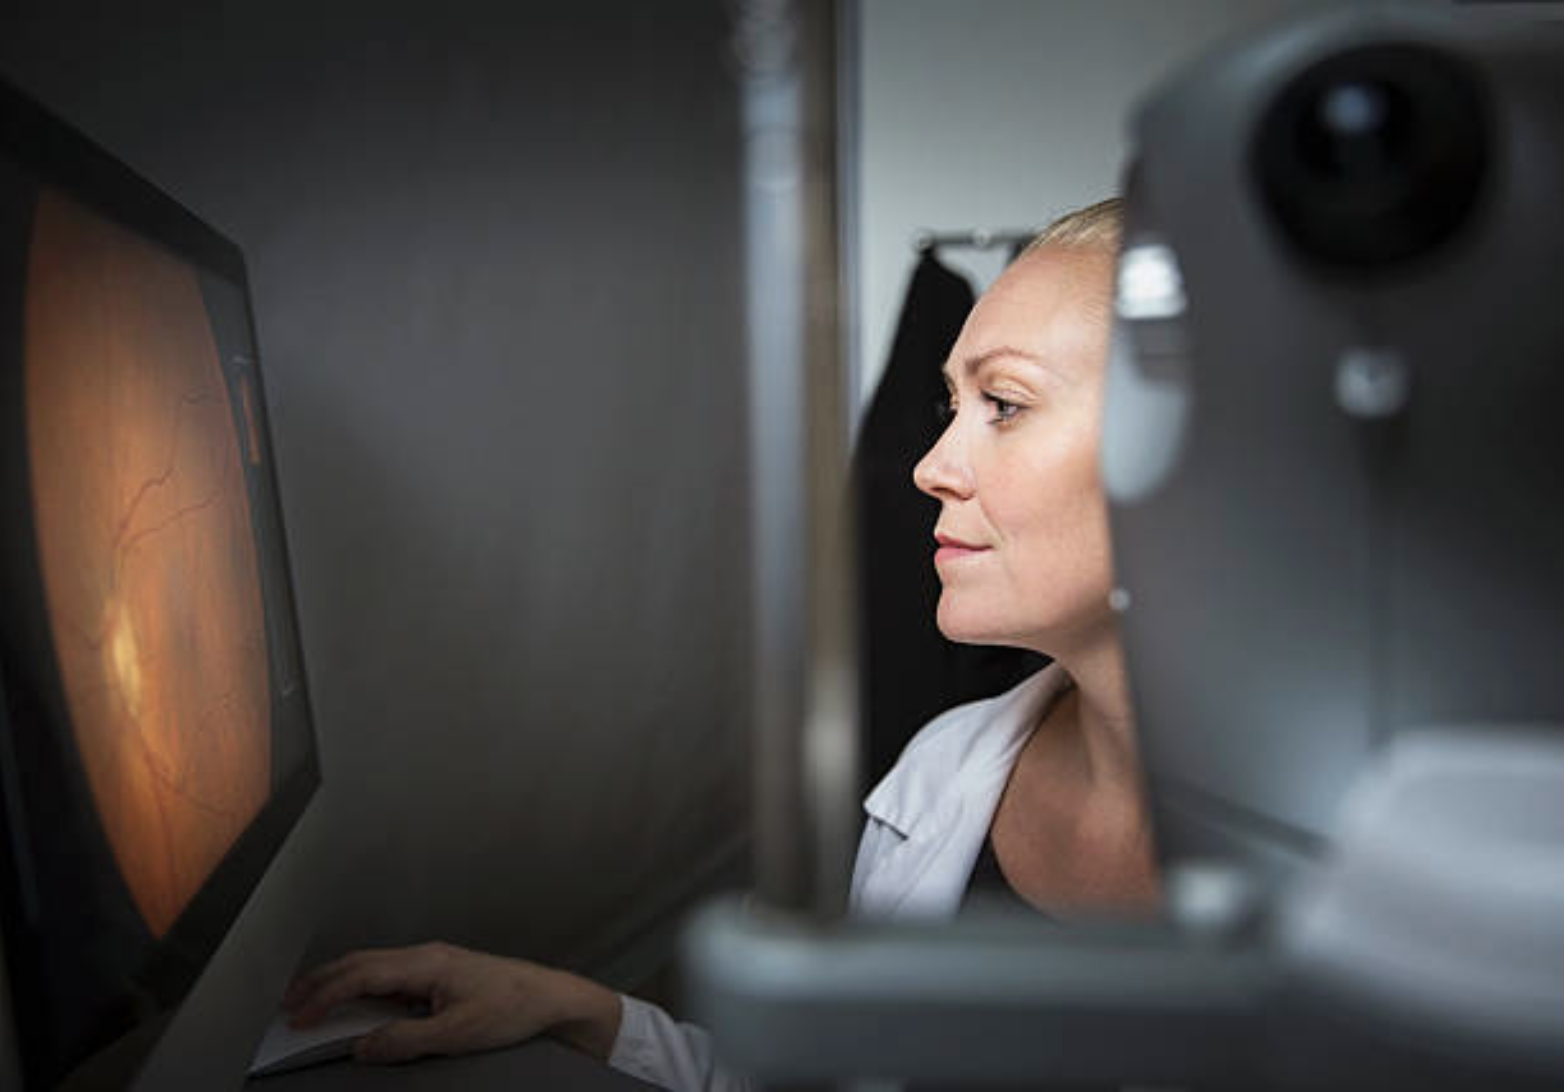 Delivery Modernization - No longer bound by FFS billing restrictions, we leverage advanced technologies—computer vision, AI, telemedicine, automation—so a unit of specialist care can be delivered at the primary care level with the same quality, consistency, and a significantly better margin profile.